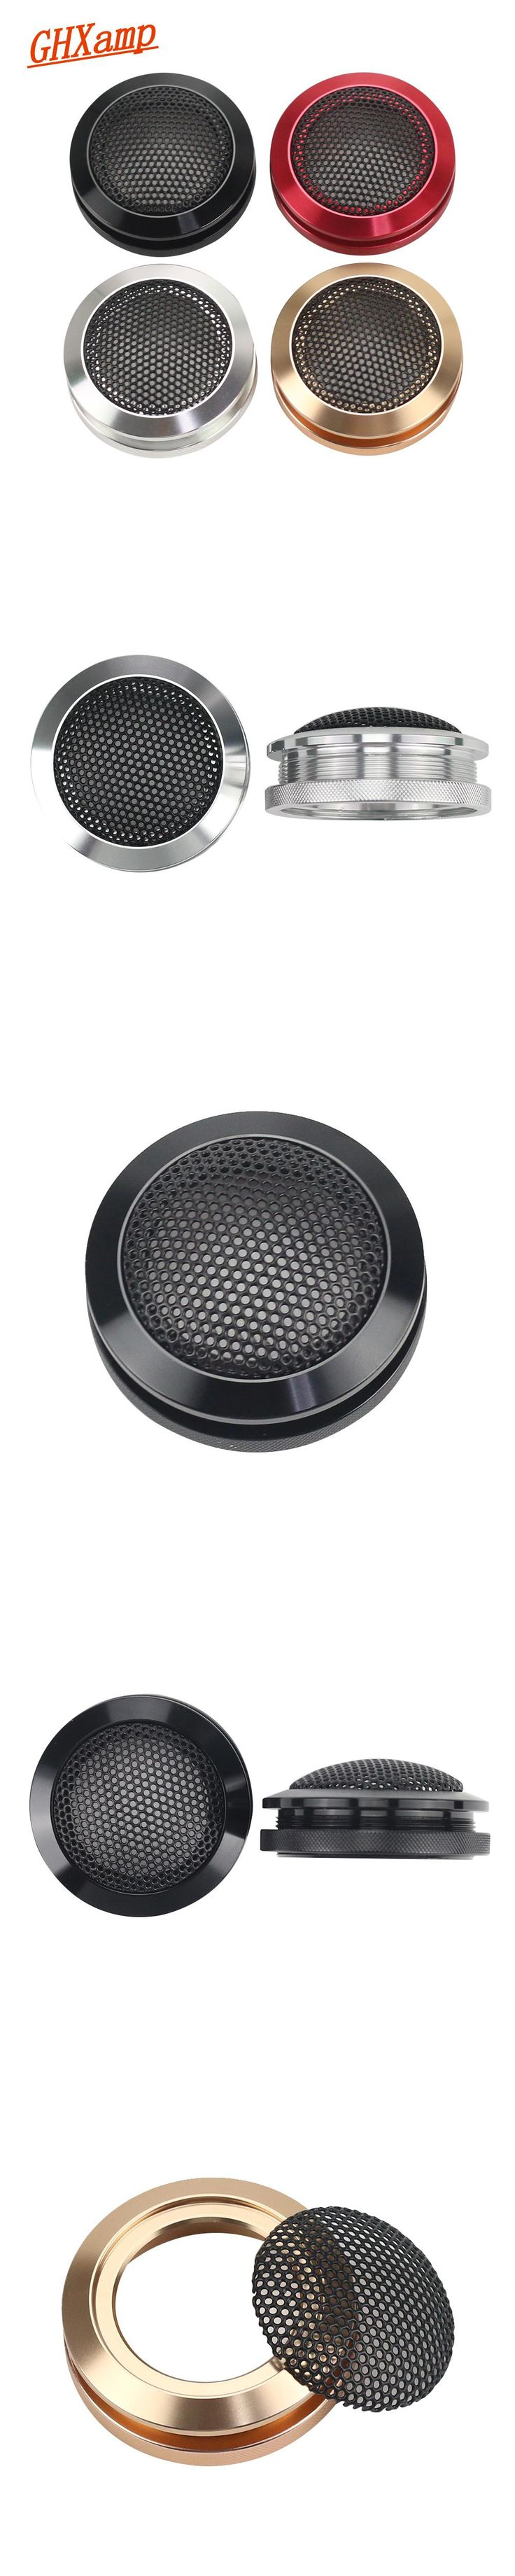 GHXAMP 2PCS 1.5 inch Aluminum Car Tweeter Speaker Grill Mesh Enclosure Protective Cover Shell For Harman Kardon Boss Speaker DIY